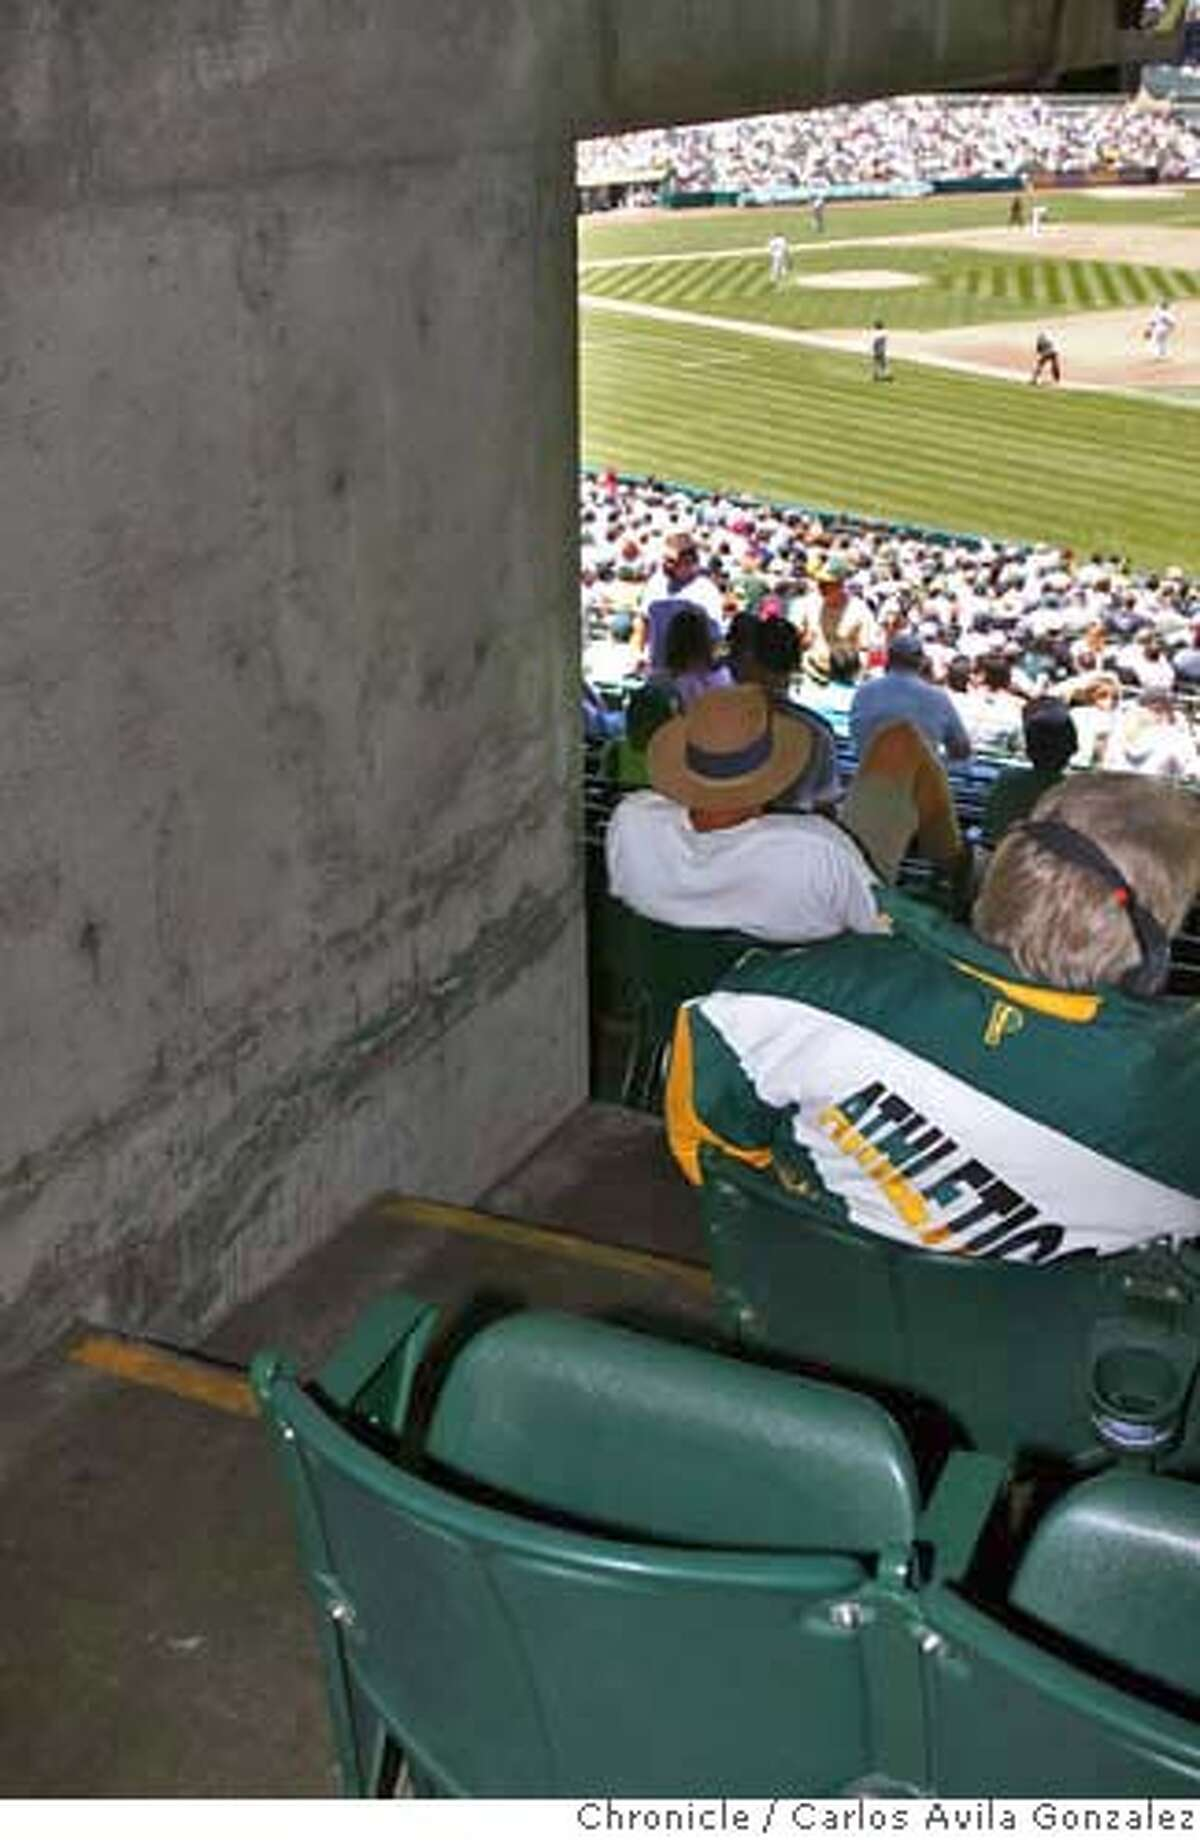 SEATS_007_CAG.JPG Obstructed view seats in the left foul zone. The seat doesn't allow you to even see the batter. Photos for story on worst seats at A's and Giants games. Photo by Carlos Avila Gonzalez/The San Francisco Chronicle Photo taken on 6/15/06, in Oakland, Ca, USA **All names cq (source) MANDATORY CREDIT FOR PHOTOG AND SAN FRANCISCO CHRONICLE/ -MAGS OUT